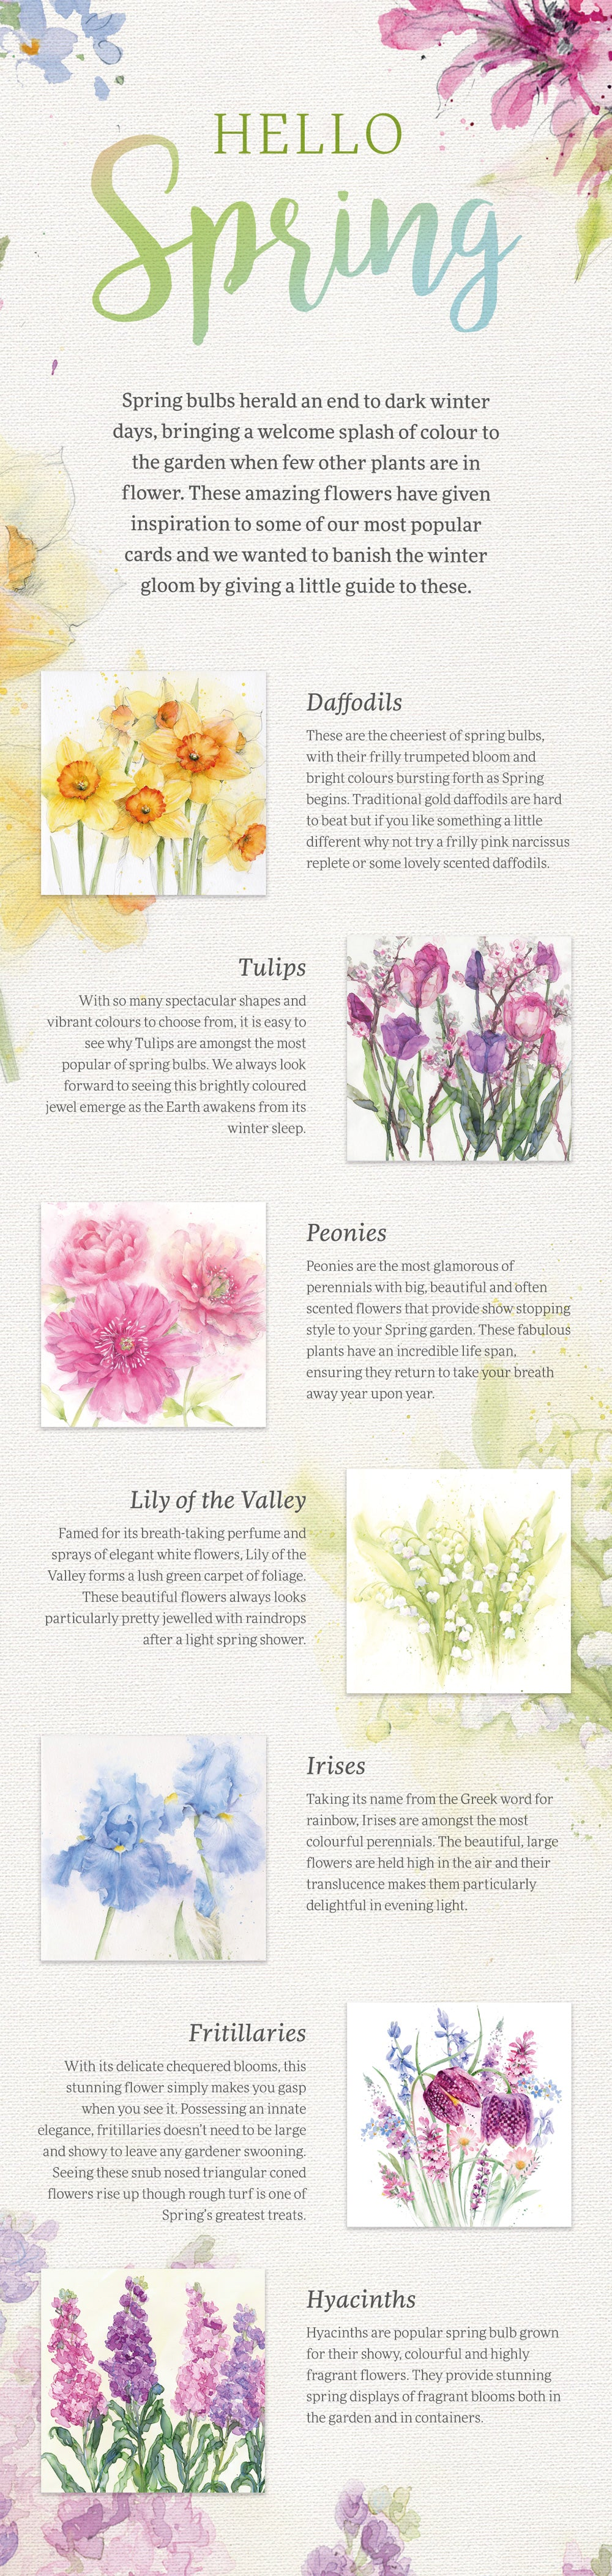 Hello Spring The Whistlefish Guide To Spring Flowers